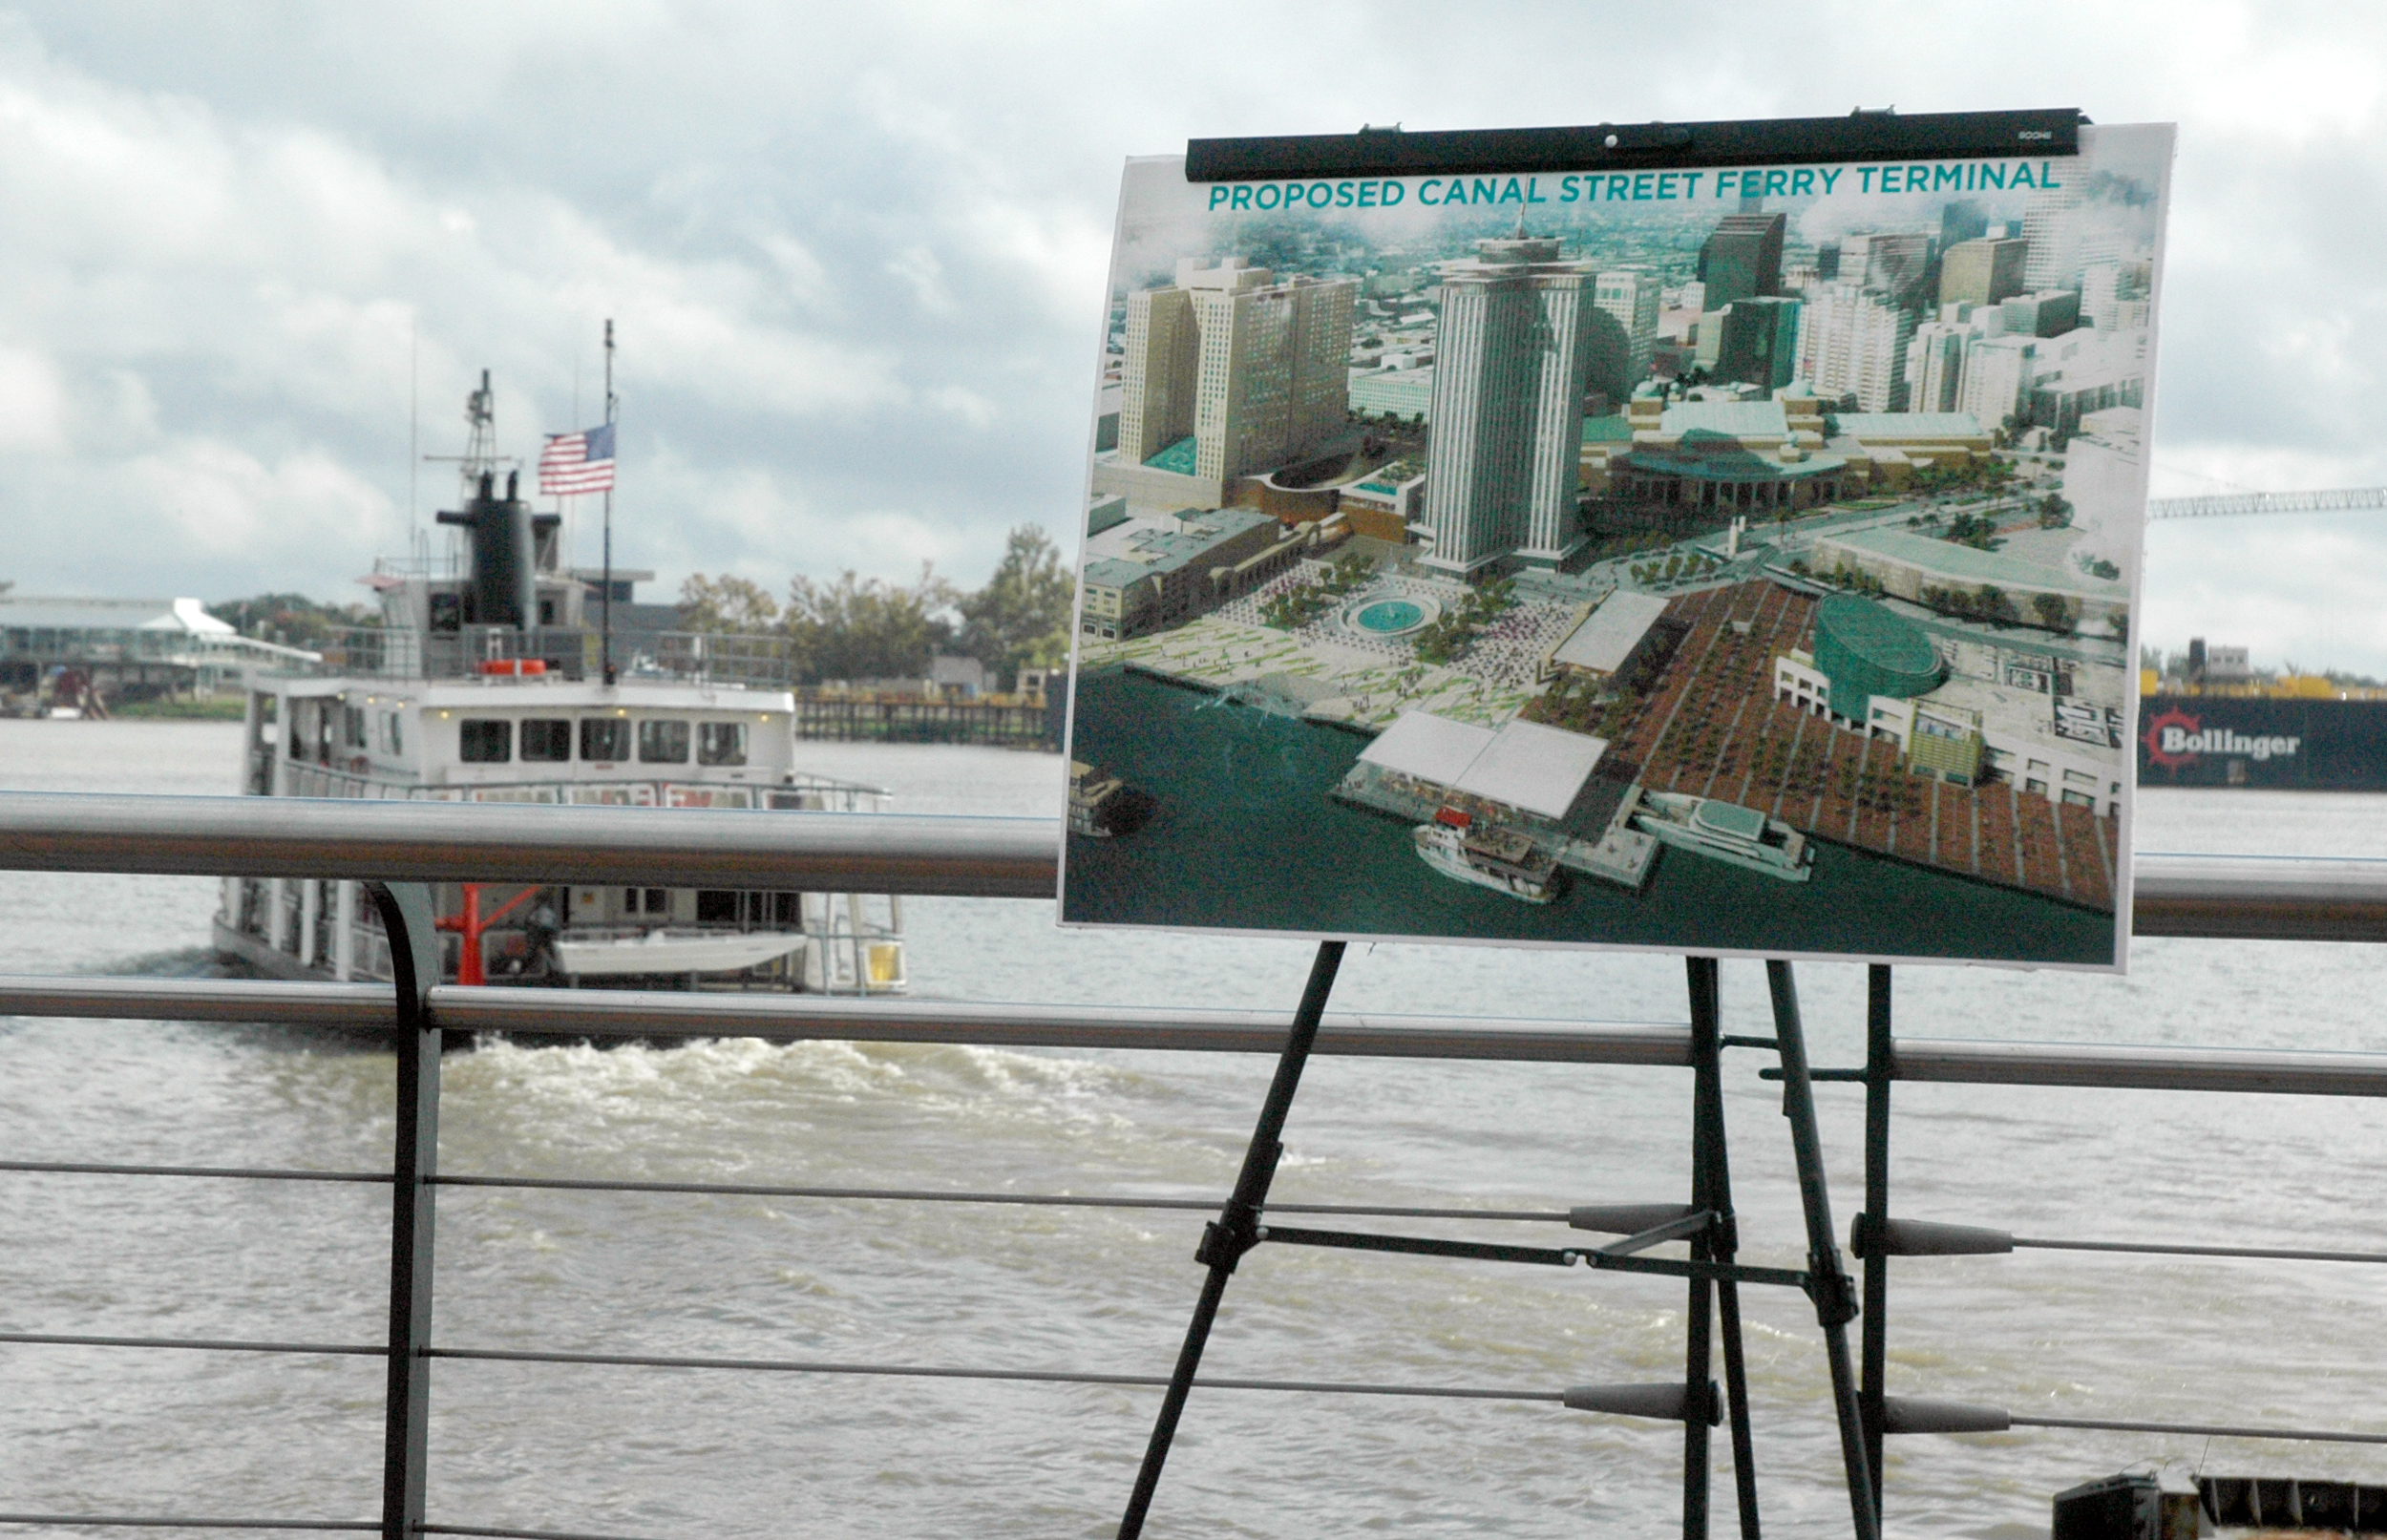 The proposed new Canal Street Ferry Terminal project will include a double ferry dock, new ferry terminal, streetcar access to the convention center, bus bay access and an expanded RTA bus fleet.